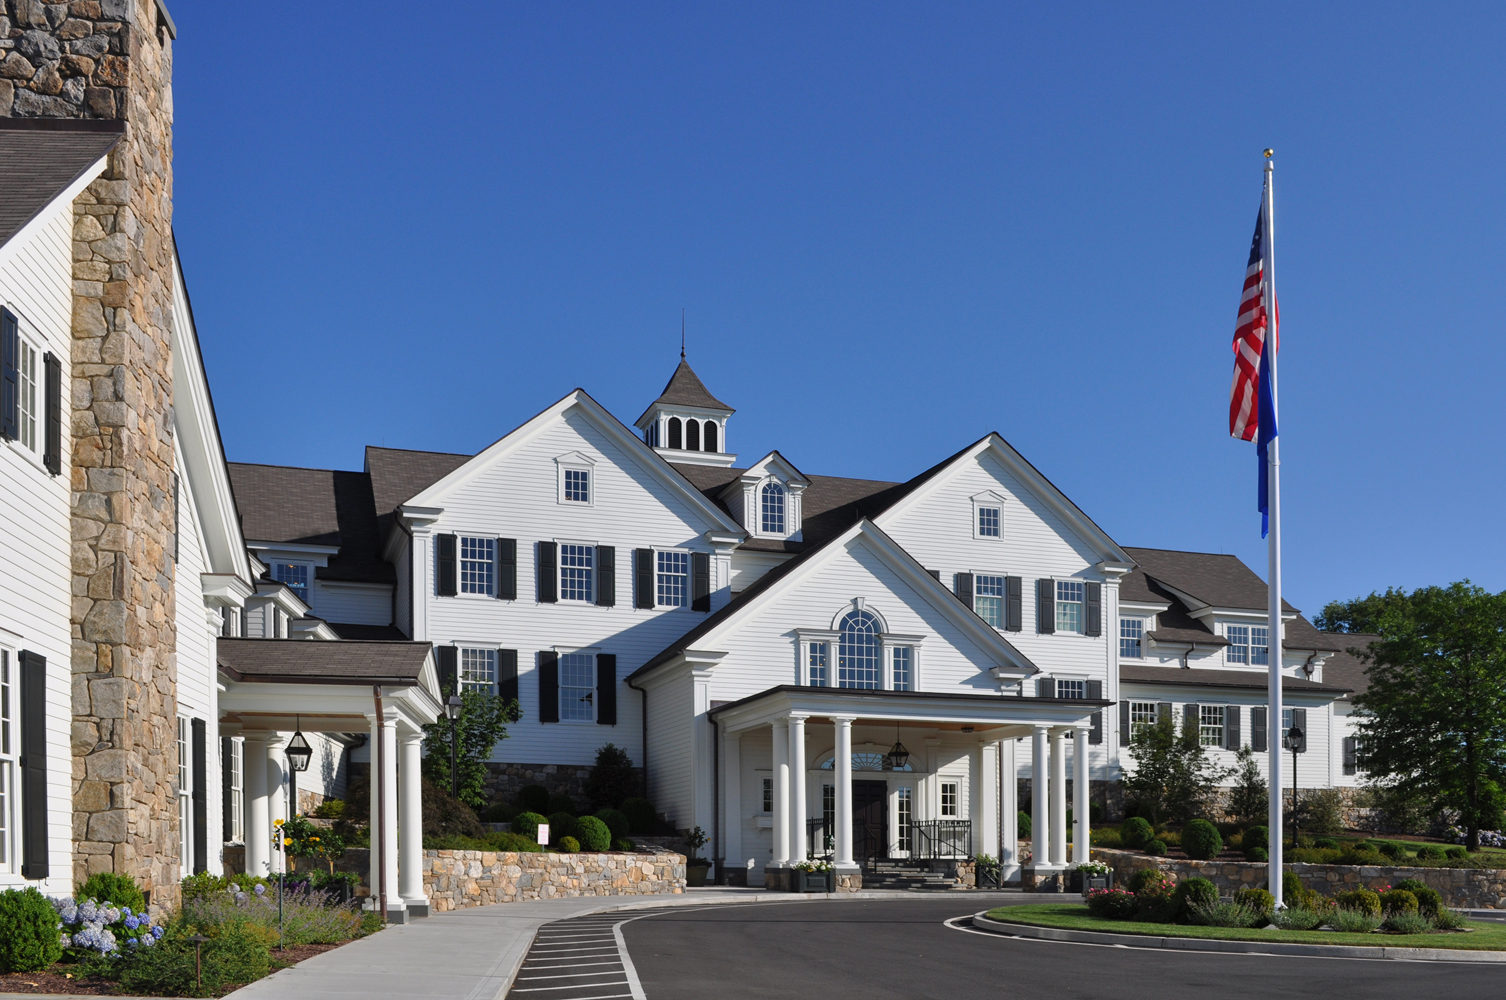 CMAA Connecticut Chapter View Club Personnel: Patterson Club